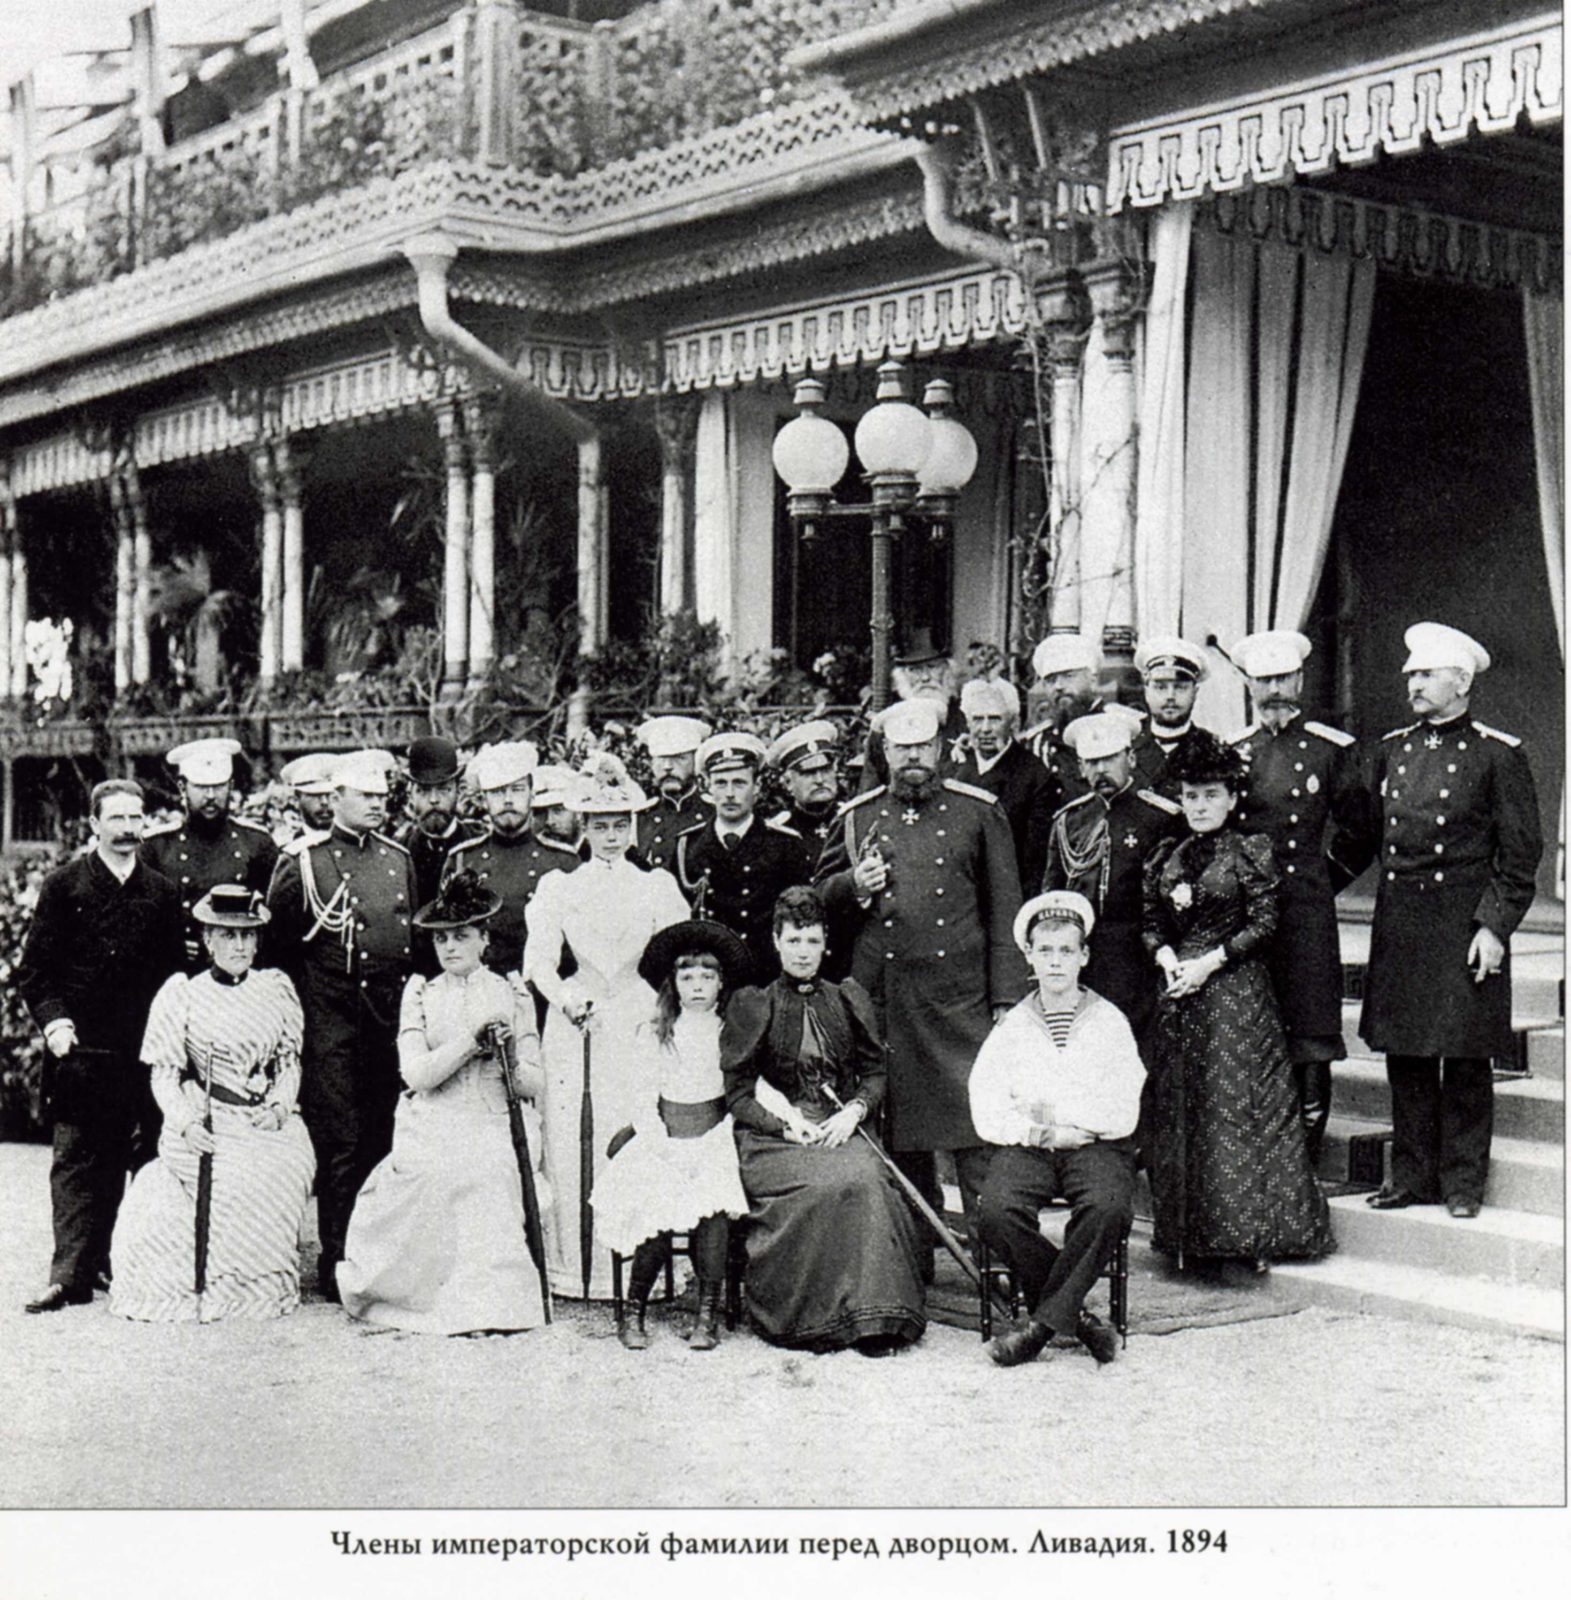 Members of the Imperial family before the Livadia Palace.